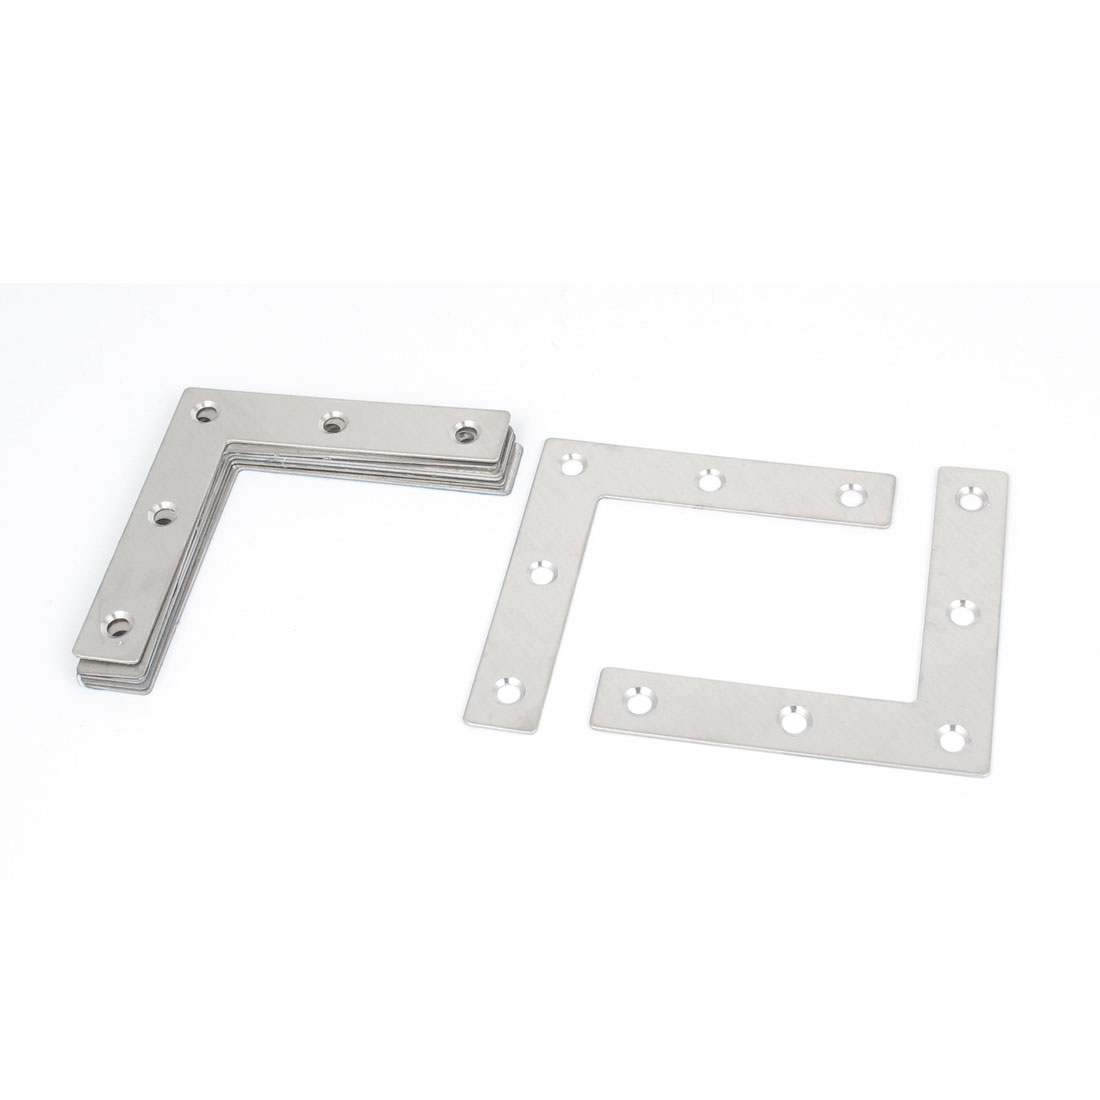 Furniture 80mmx80mmx16mm L Shape Right Angle Flat Plate Corner Brace Bracket 8Pcs